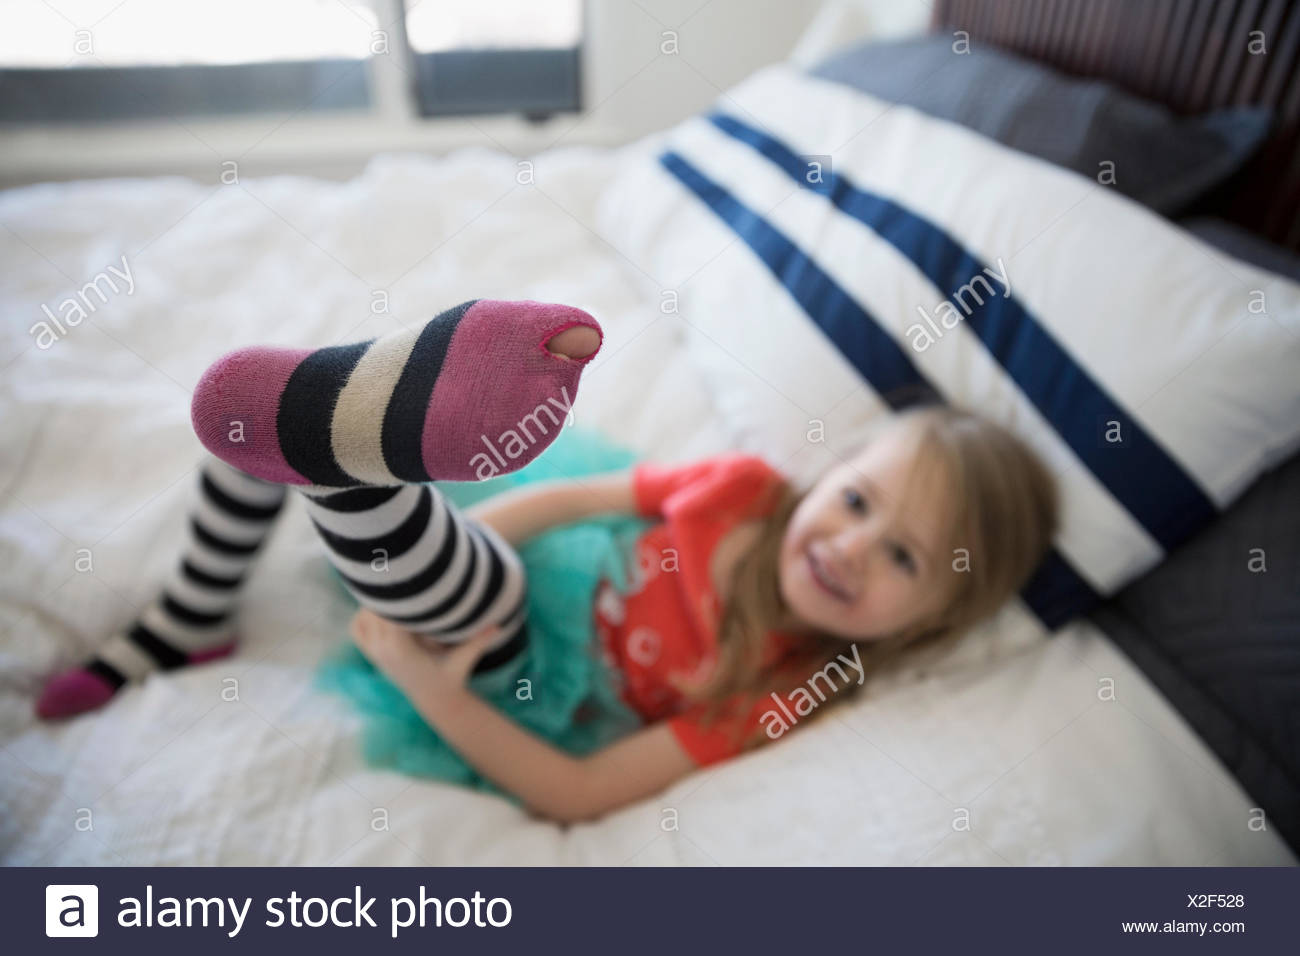 Cute girl showing toe poking from hole leggings - Stock Image